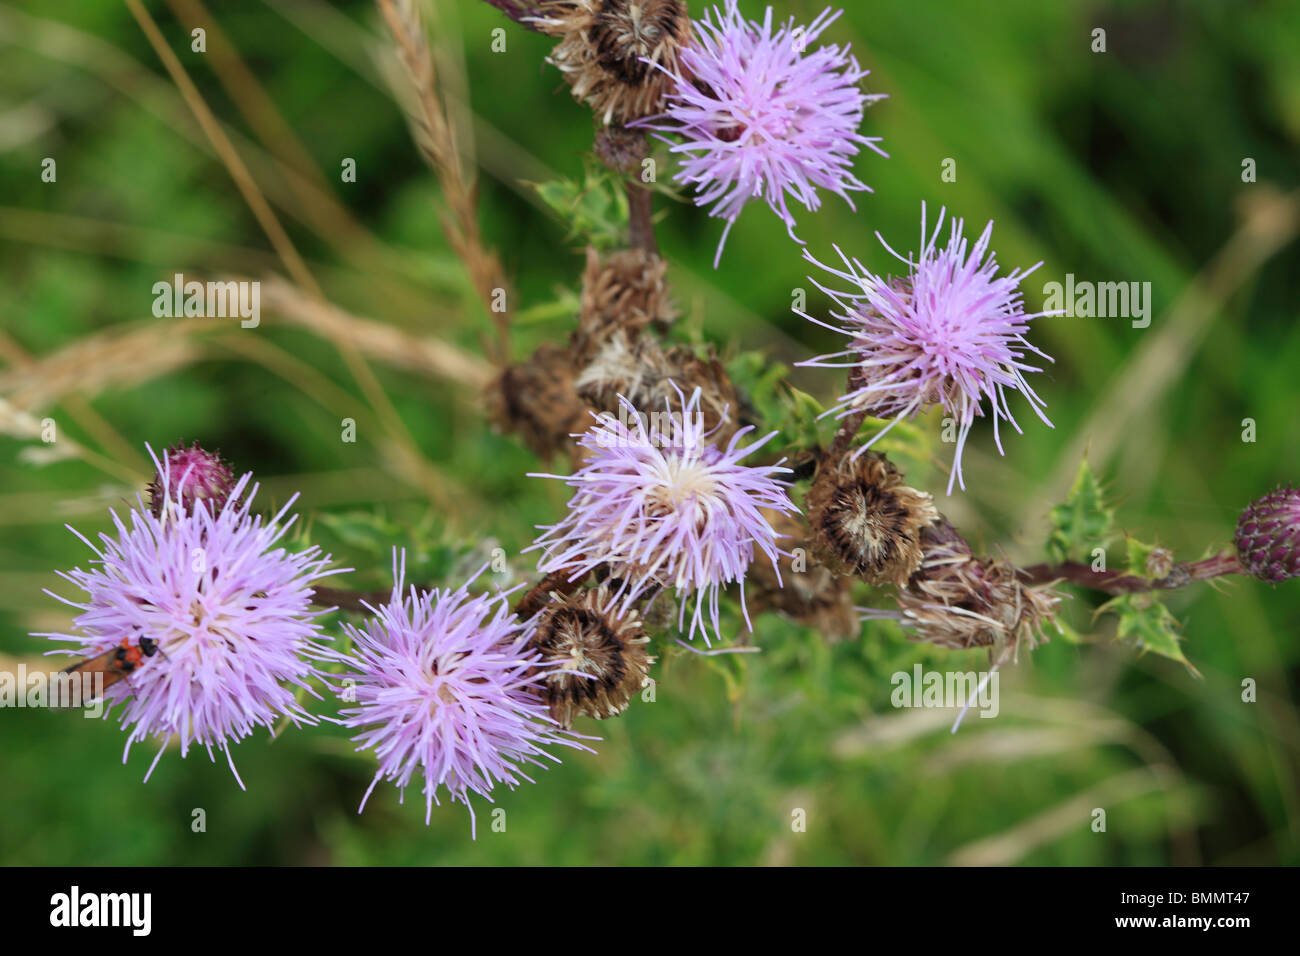 CREEPING THISTLE (Cirsium arvense) CLOSE UP OF FLOWERHEAD TOP VIEW - Stock Image